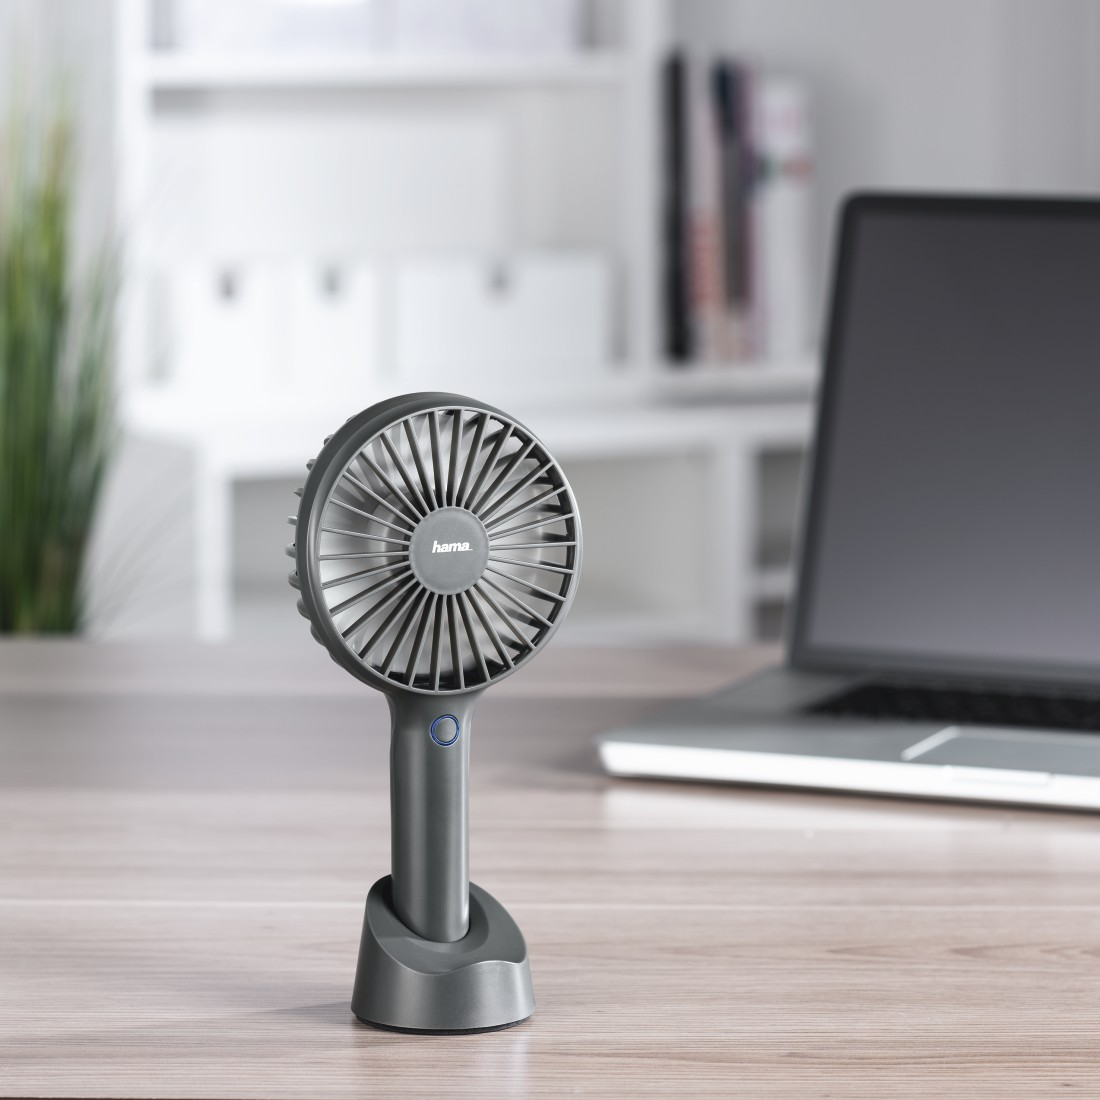 awx High-Res Appliance - Hama, Portable Hand-Held Fan, Rechargeable Battery via USB